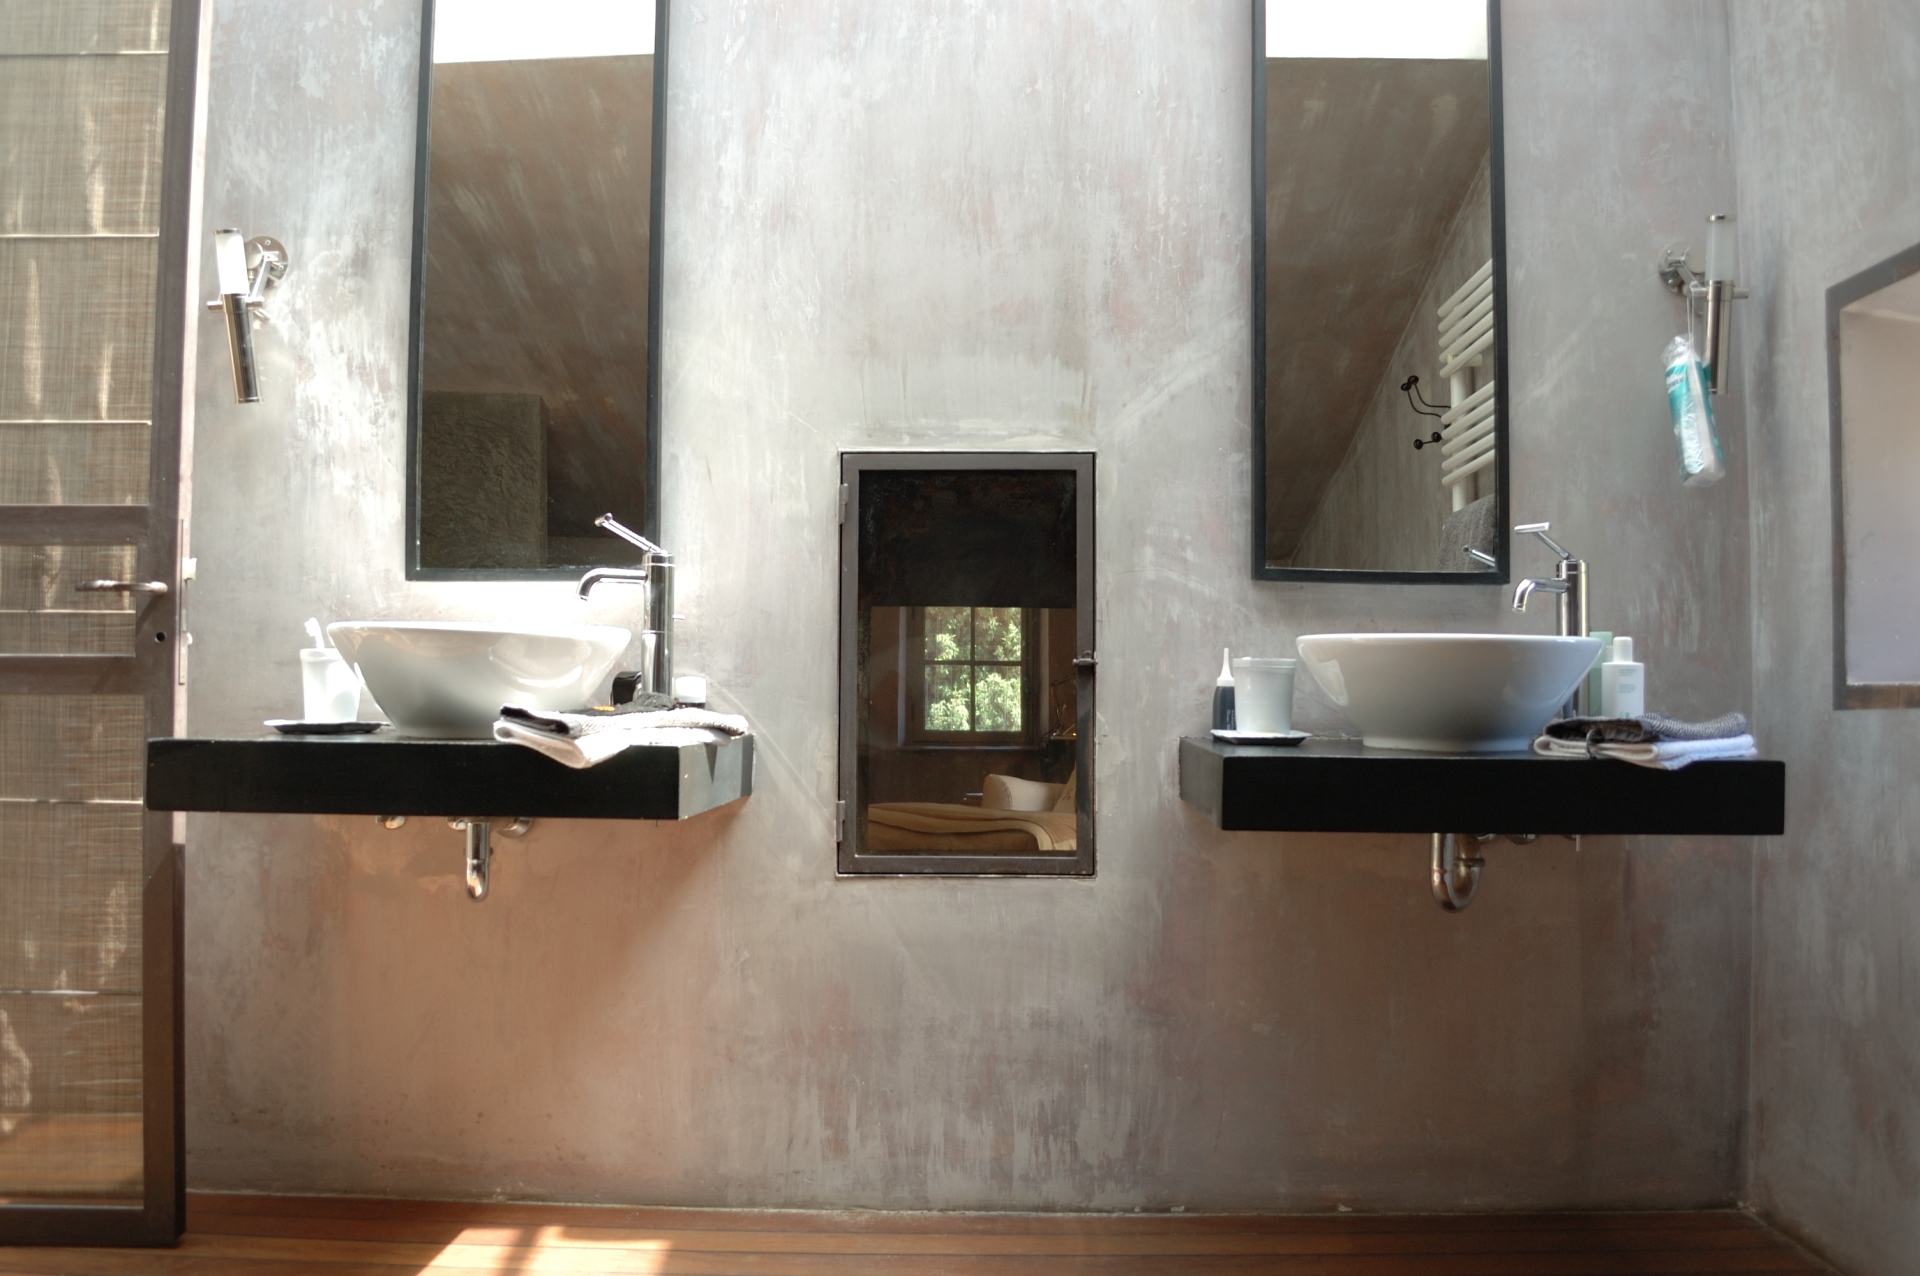 Double sink- Bathroom